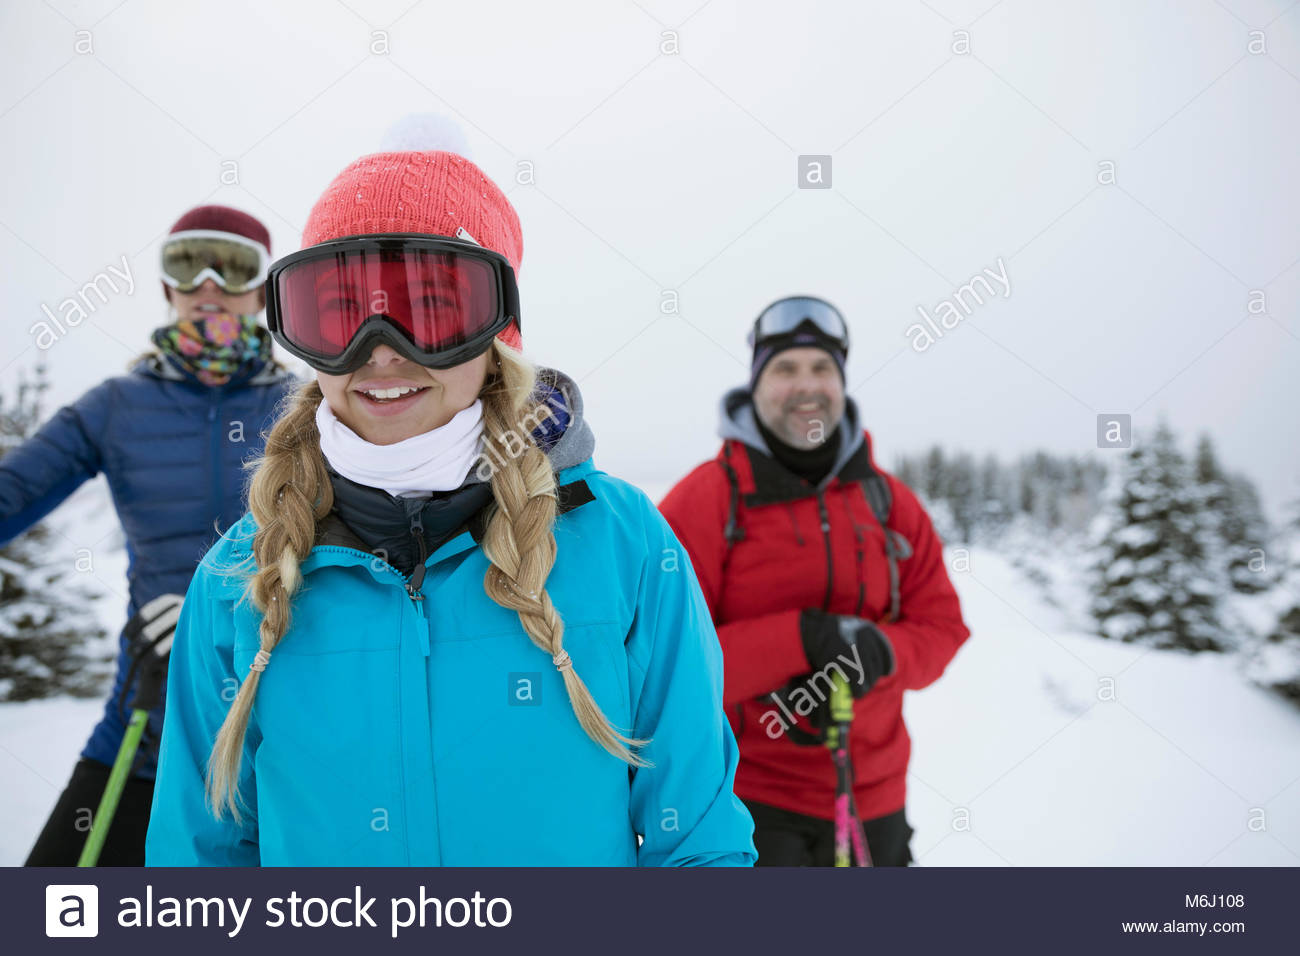 Happy girl snowshoeing with family - Stock Image